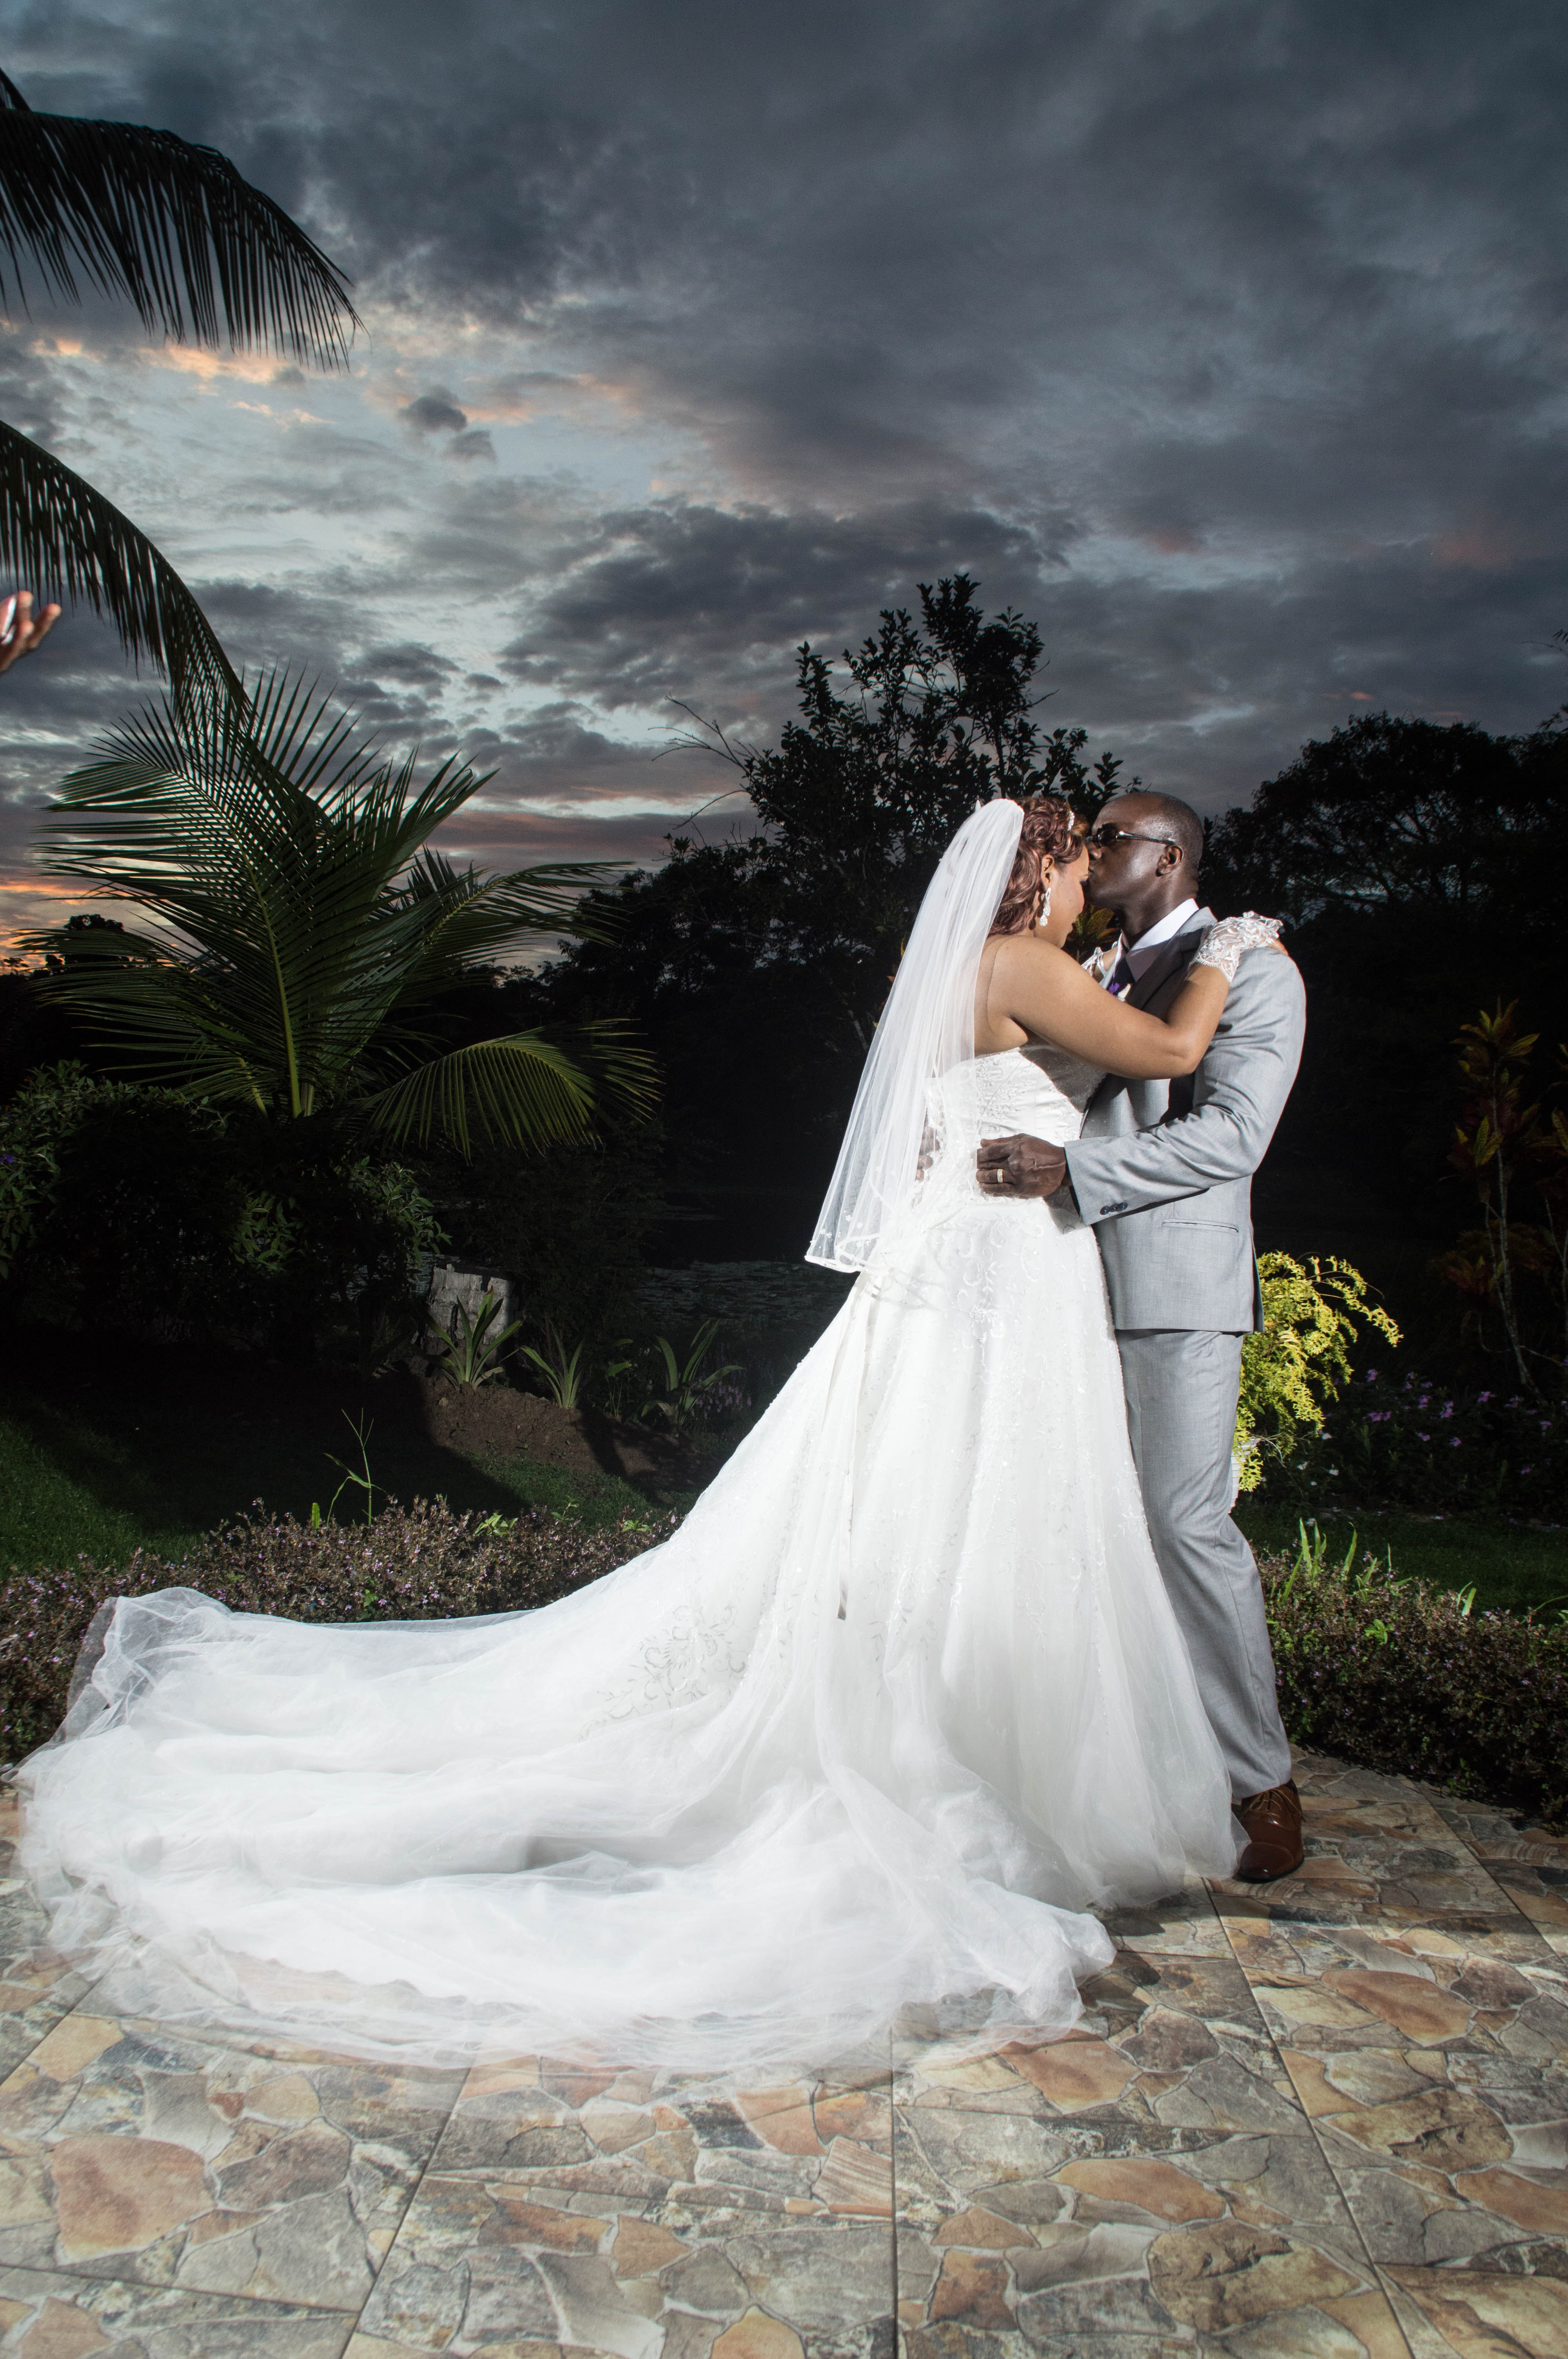 Photo of a Man Kissing His Wife, Togetherness, Photoshoot, Plants, Romance, HQ Photo